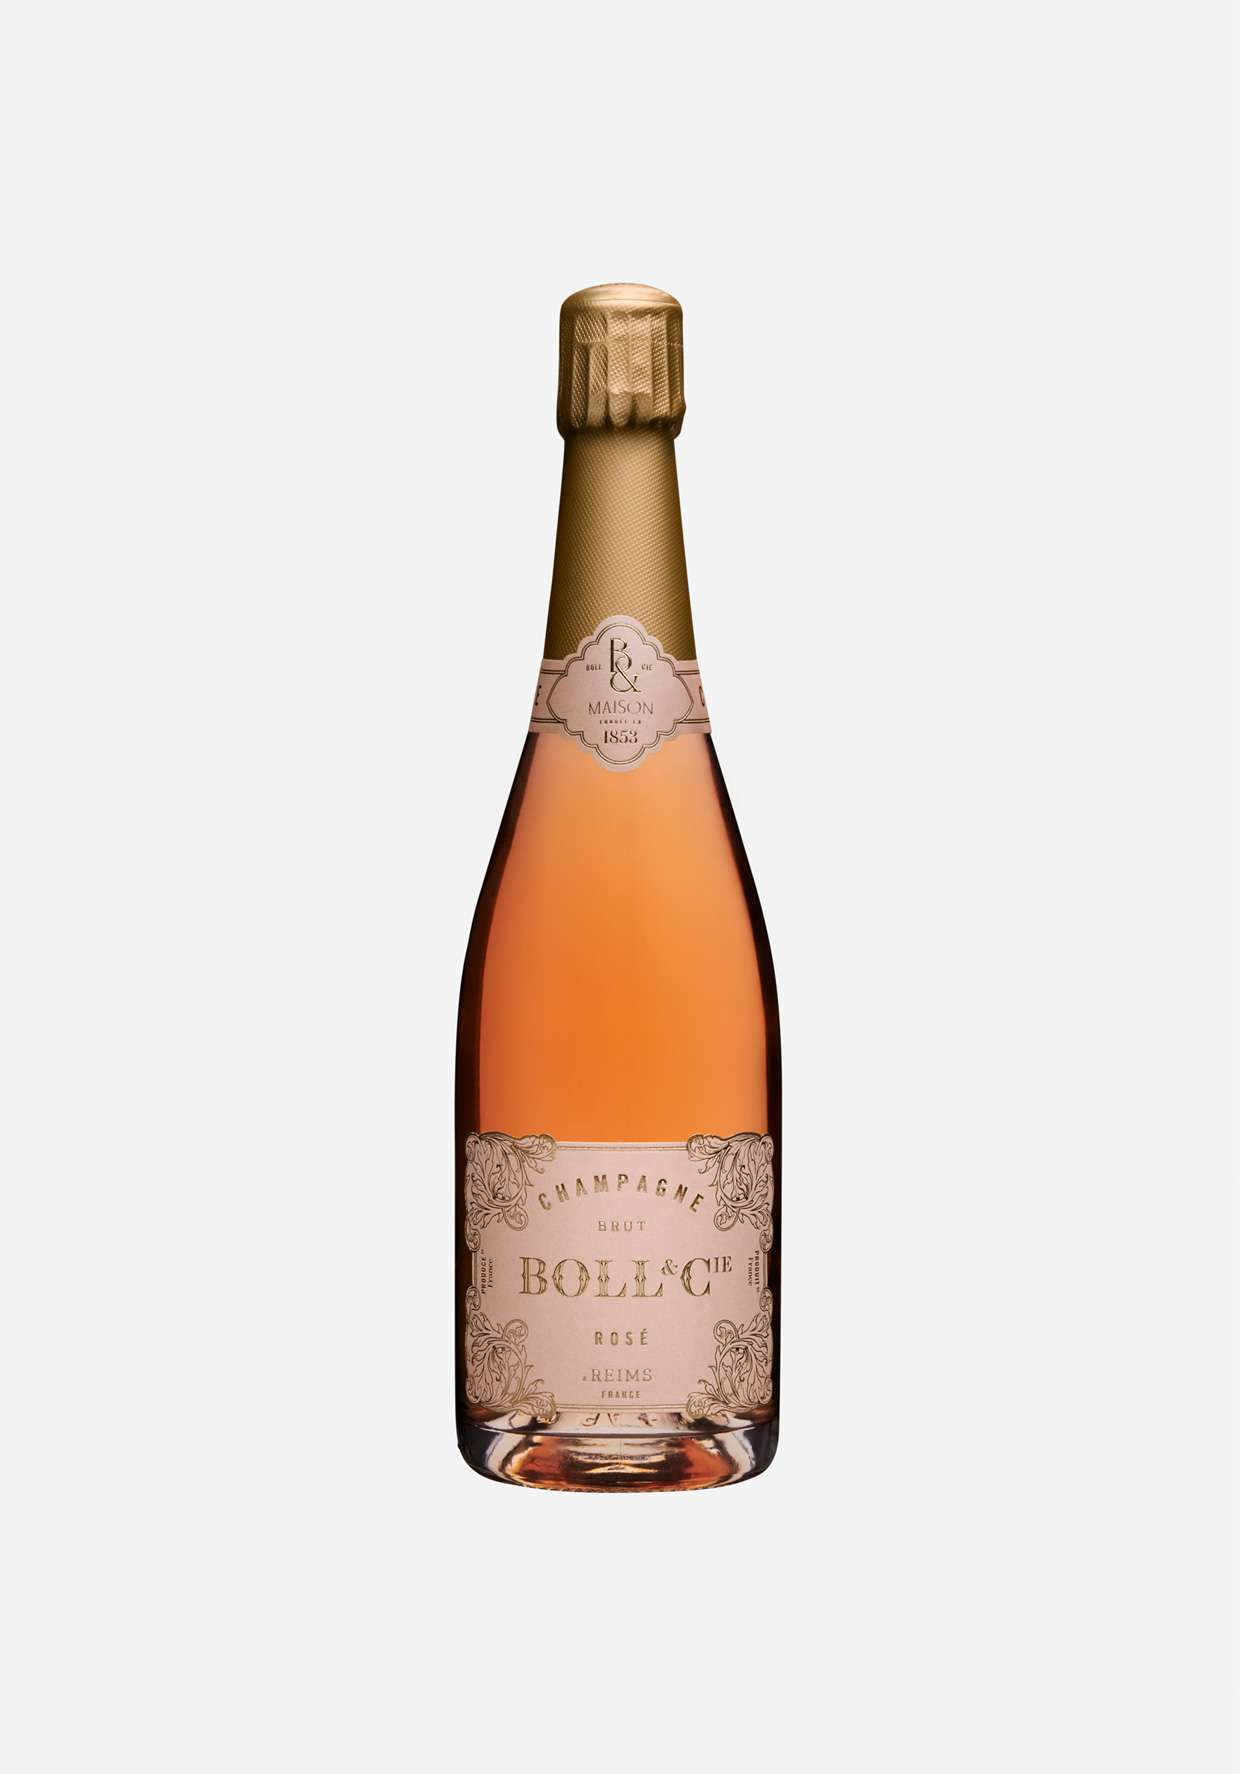 A close-up of a bottle of Rose Champagne from Boll and Cie